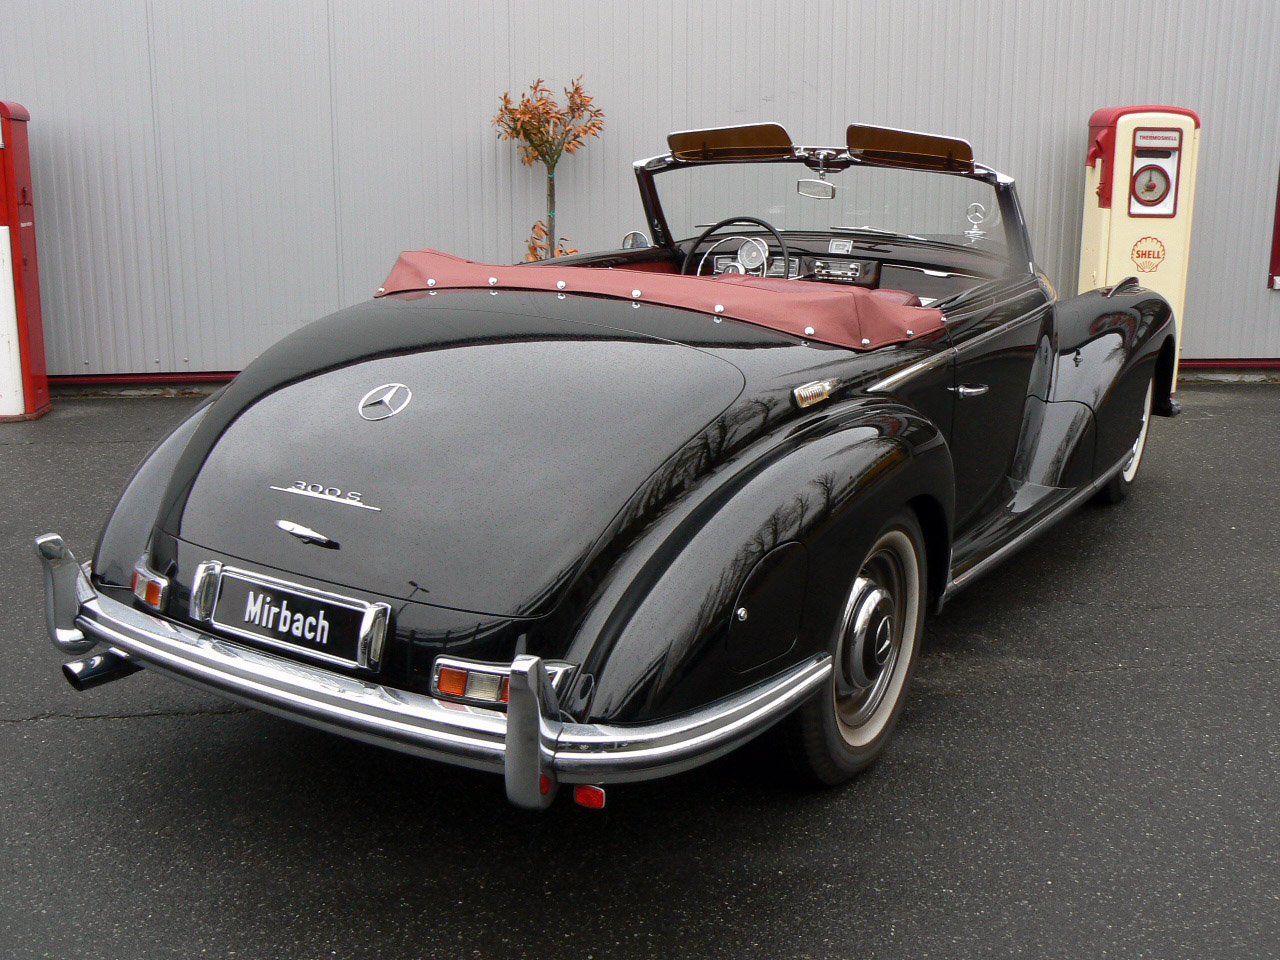 Model Of Cars Names >> Mercedes-Benz 300S Roadster photos - PhotoGallery with 4 pics| CarsBase.com